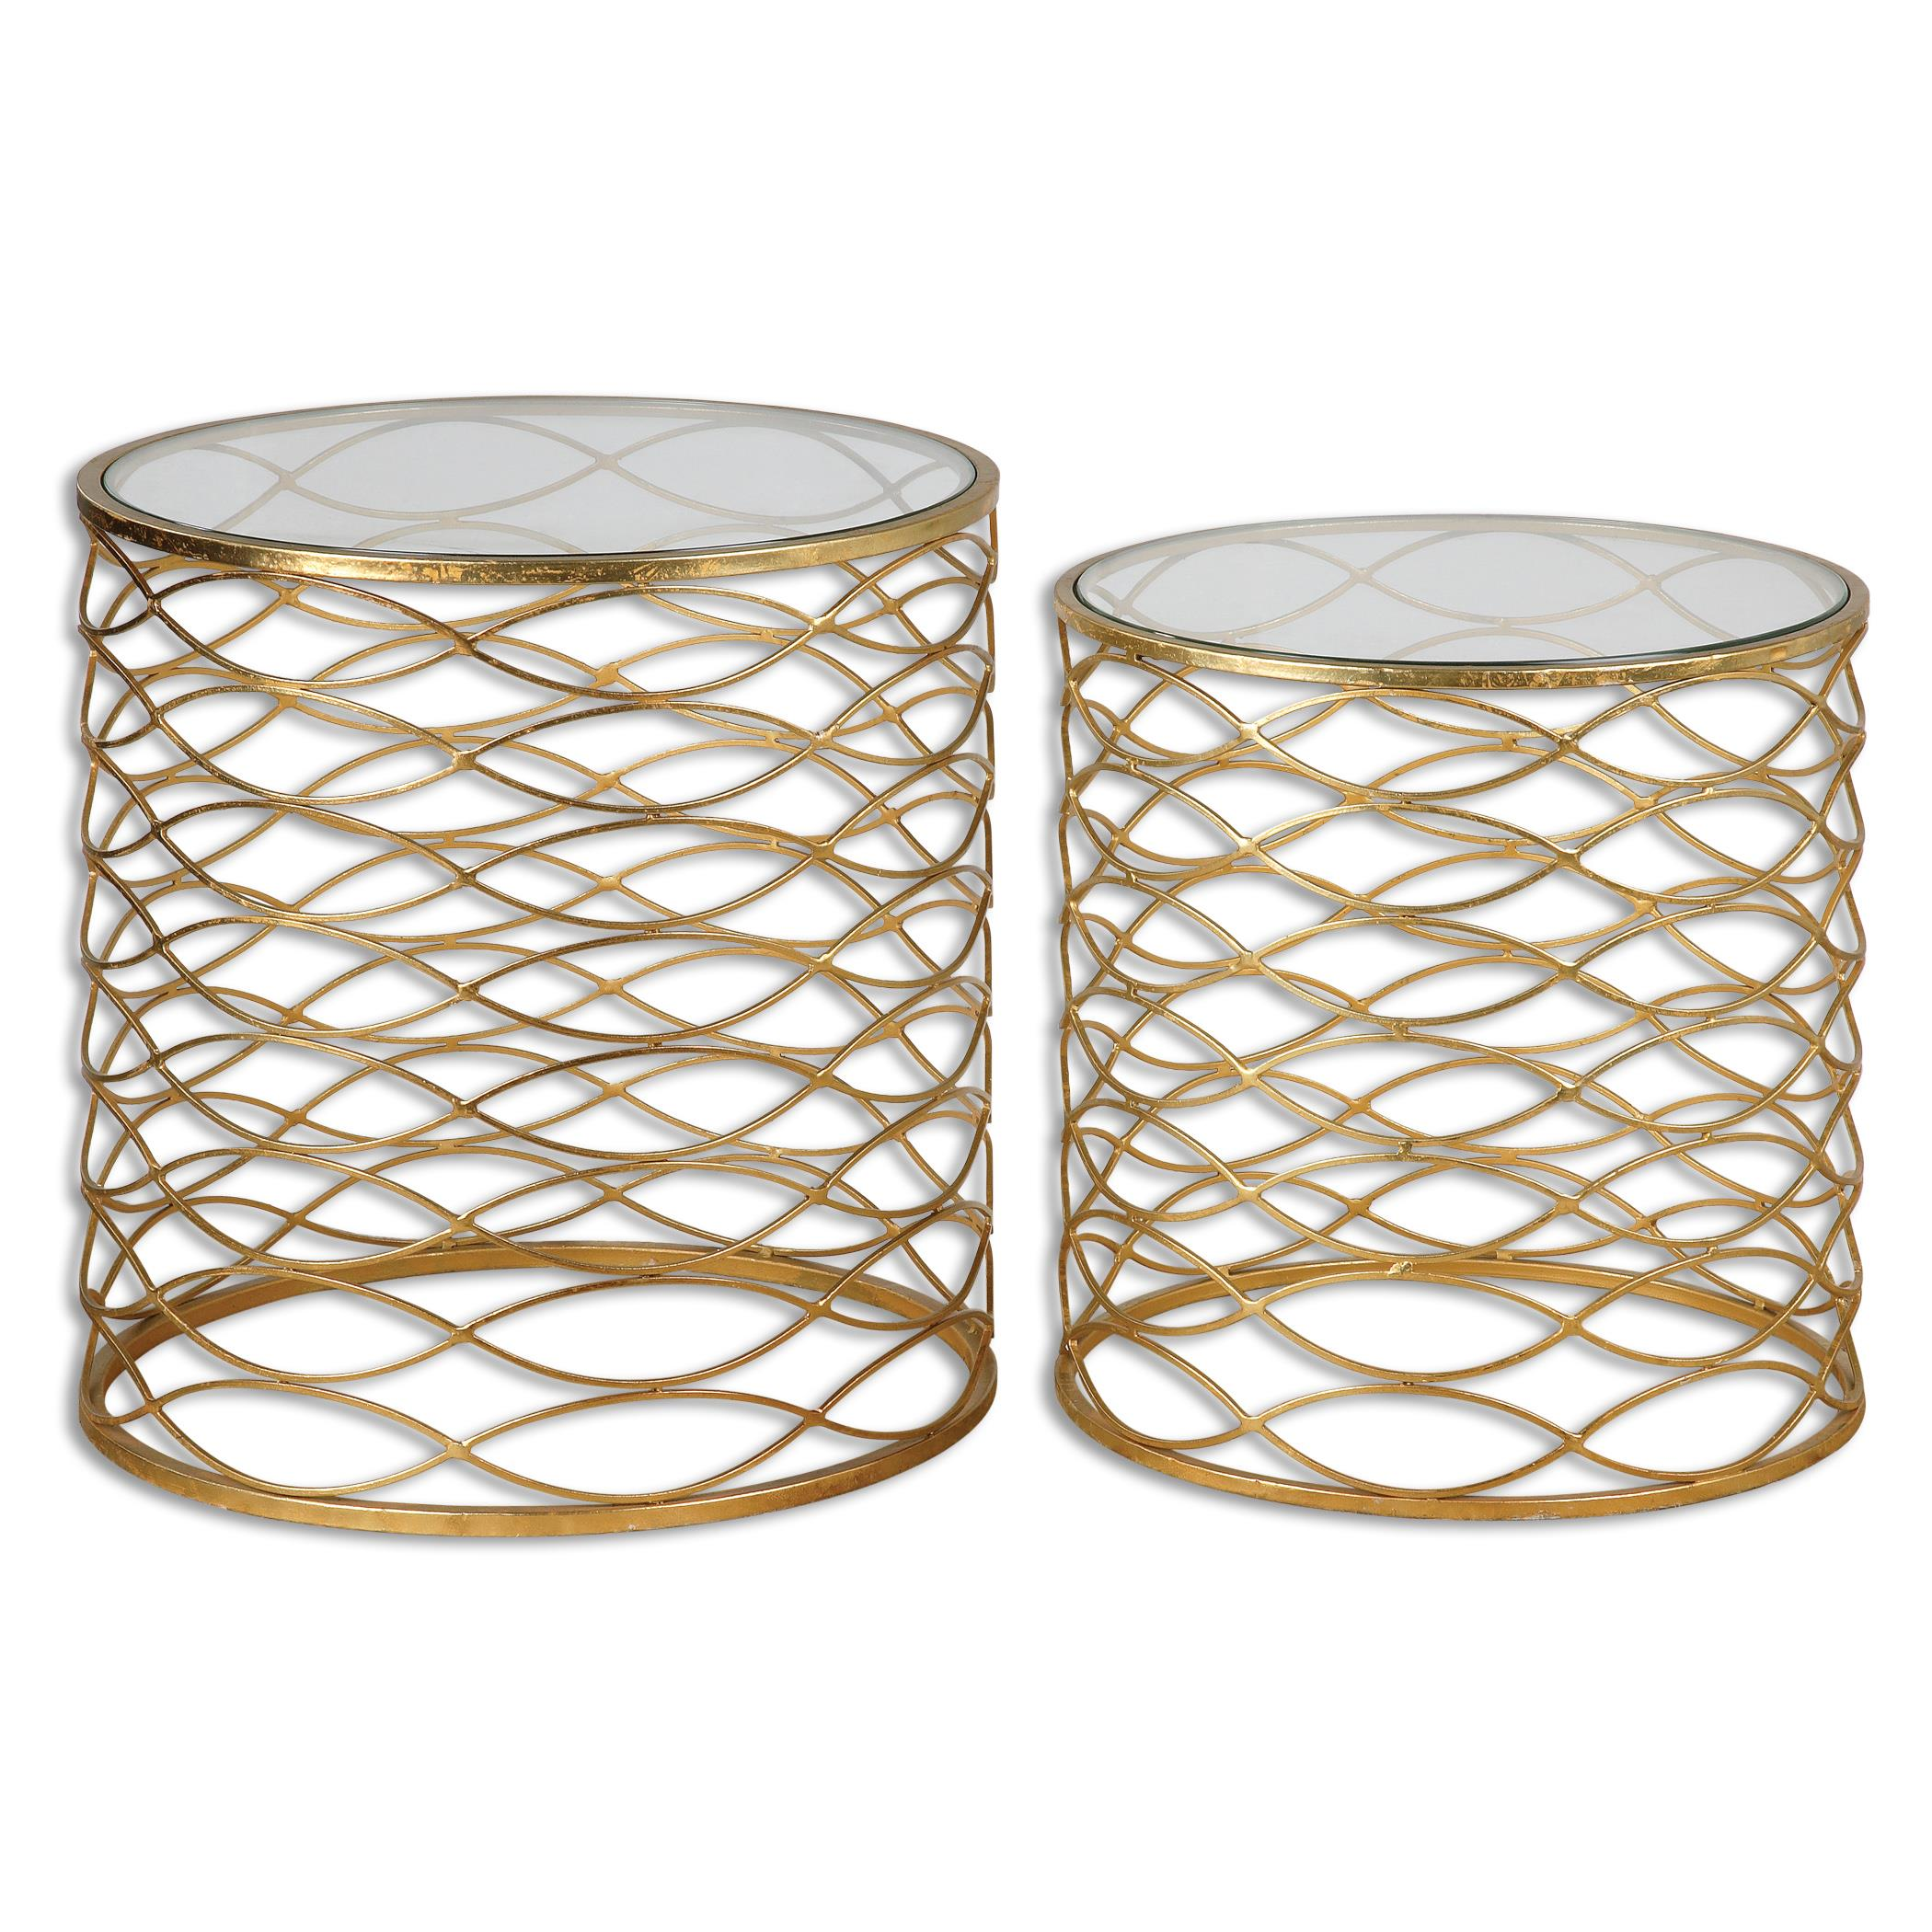 Uttermost Accent Furniture Zoa Gold Accent Tables Set/2 - Item Number: 24434